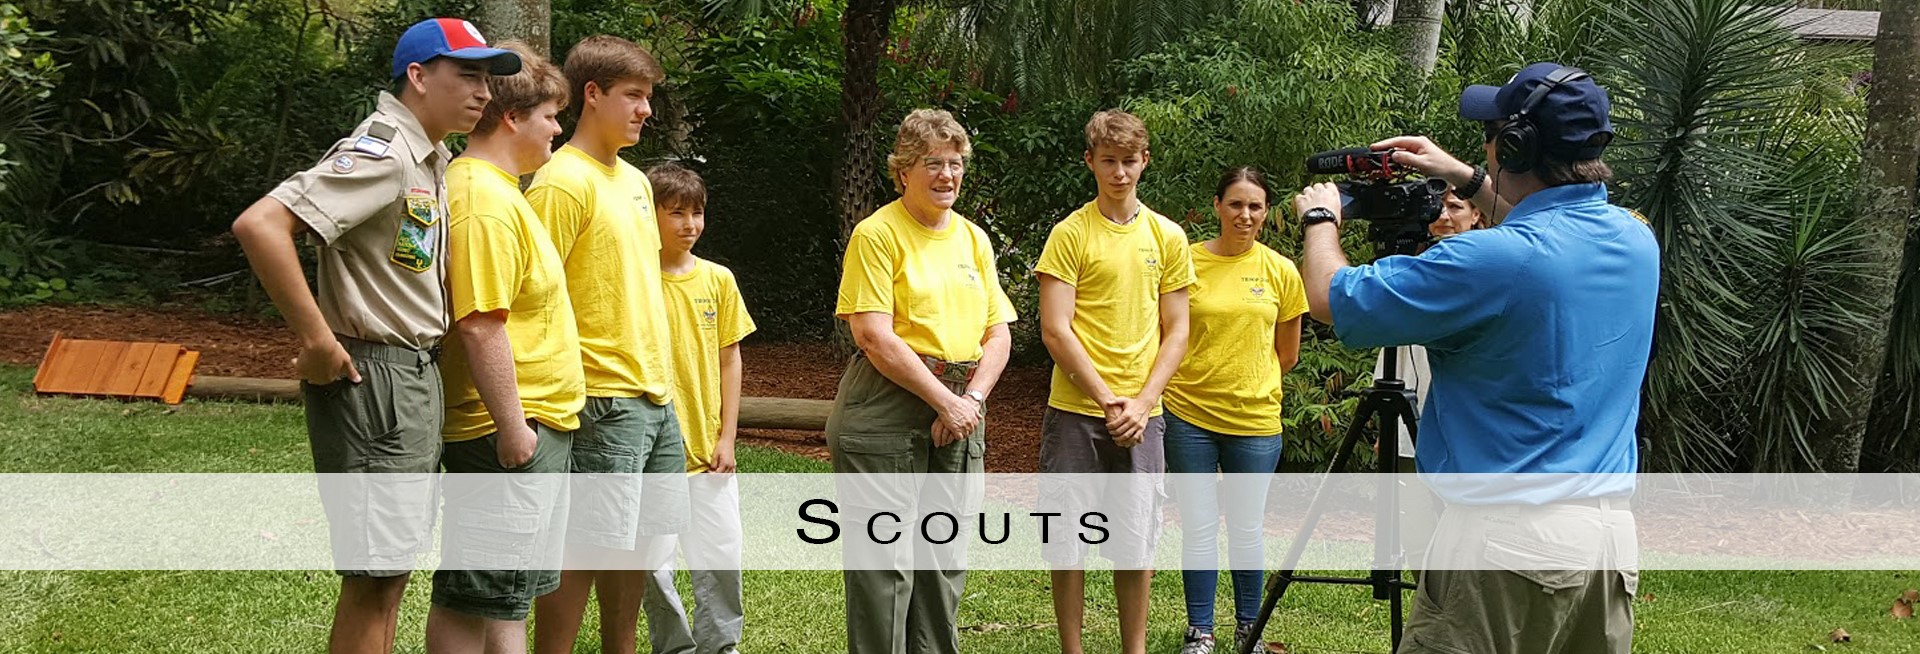 scouts1